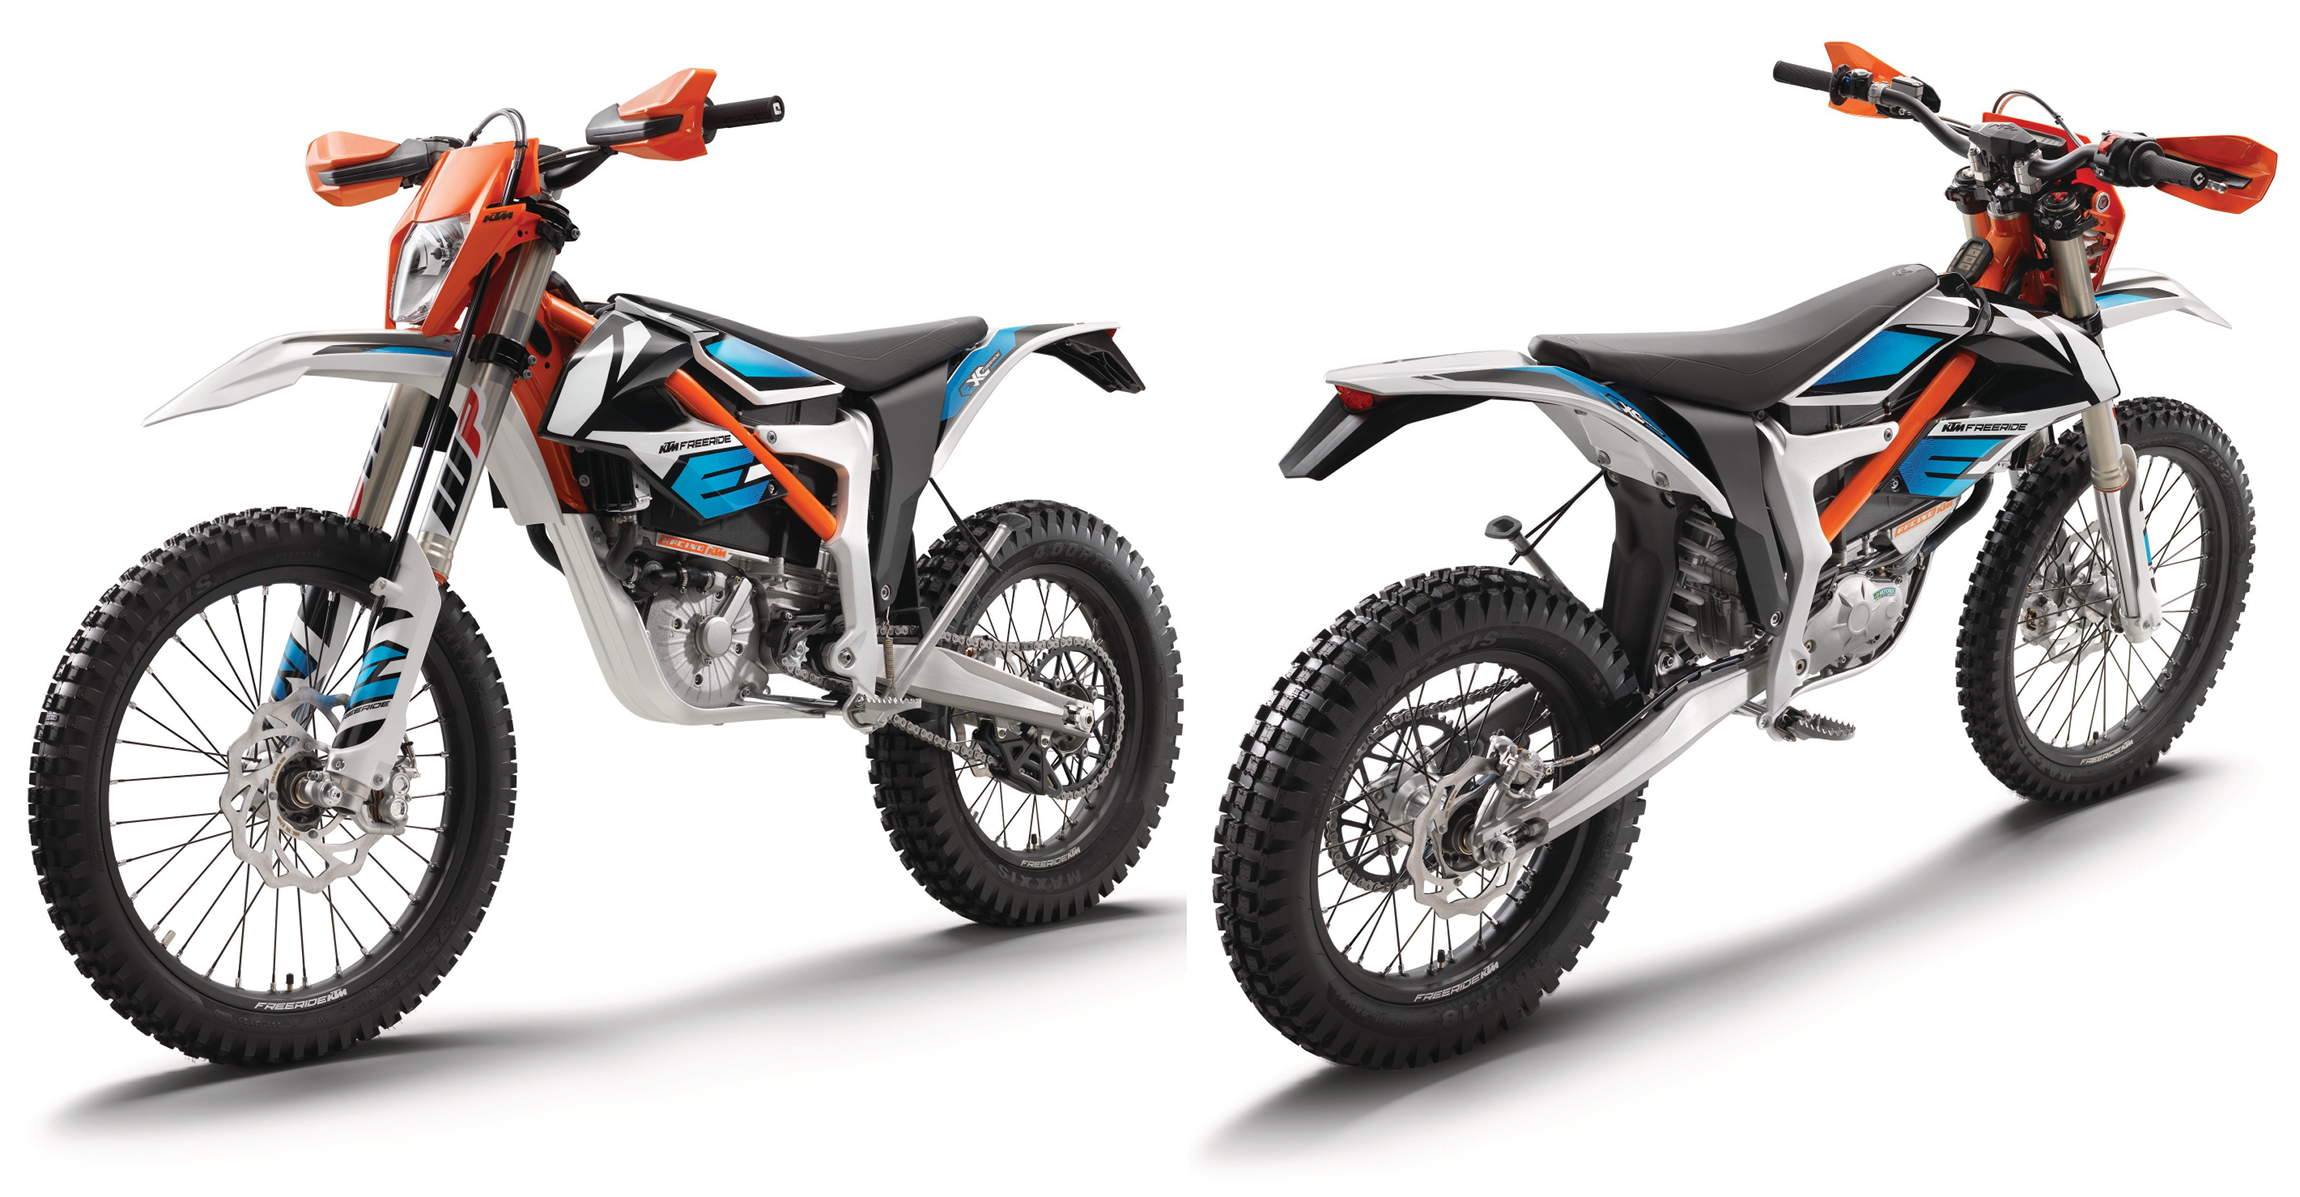 ktm announces second generation freeride e xc motorcycle news. Black Bedroom Furniture Sets. Home Design Ideas